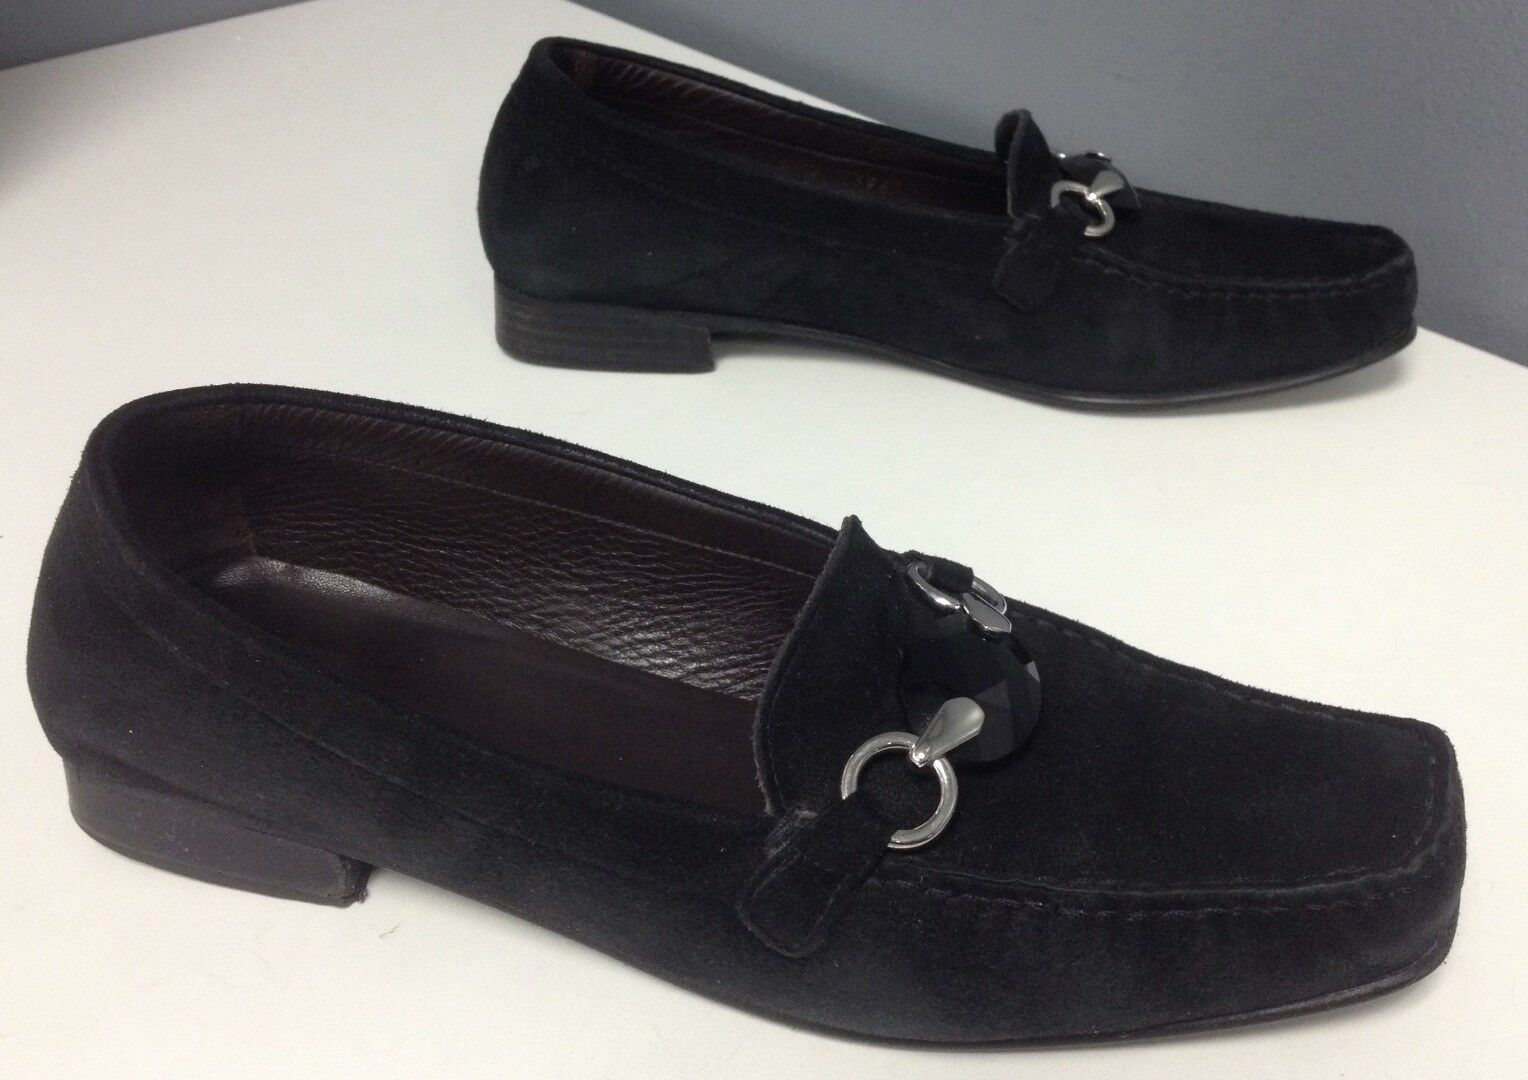 STUART WEITZMAN Black Suede Jewel Top Silver Hardware Slip On Loafer Sz 8 B4534